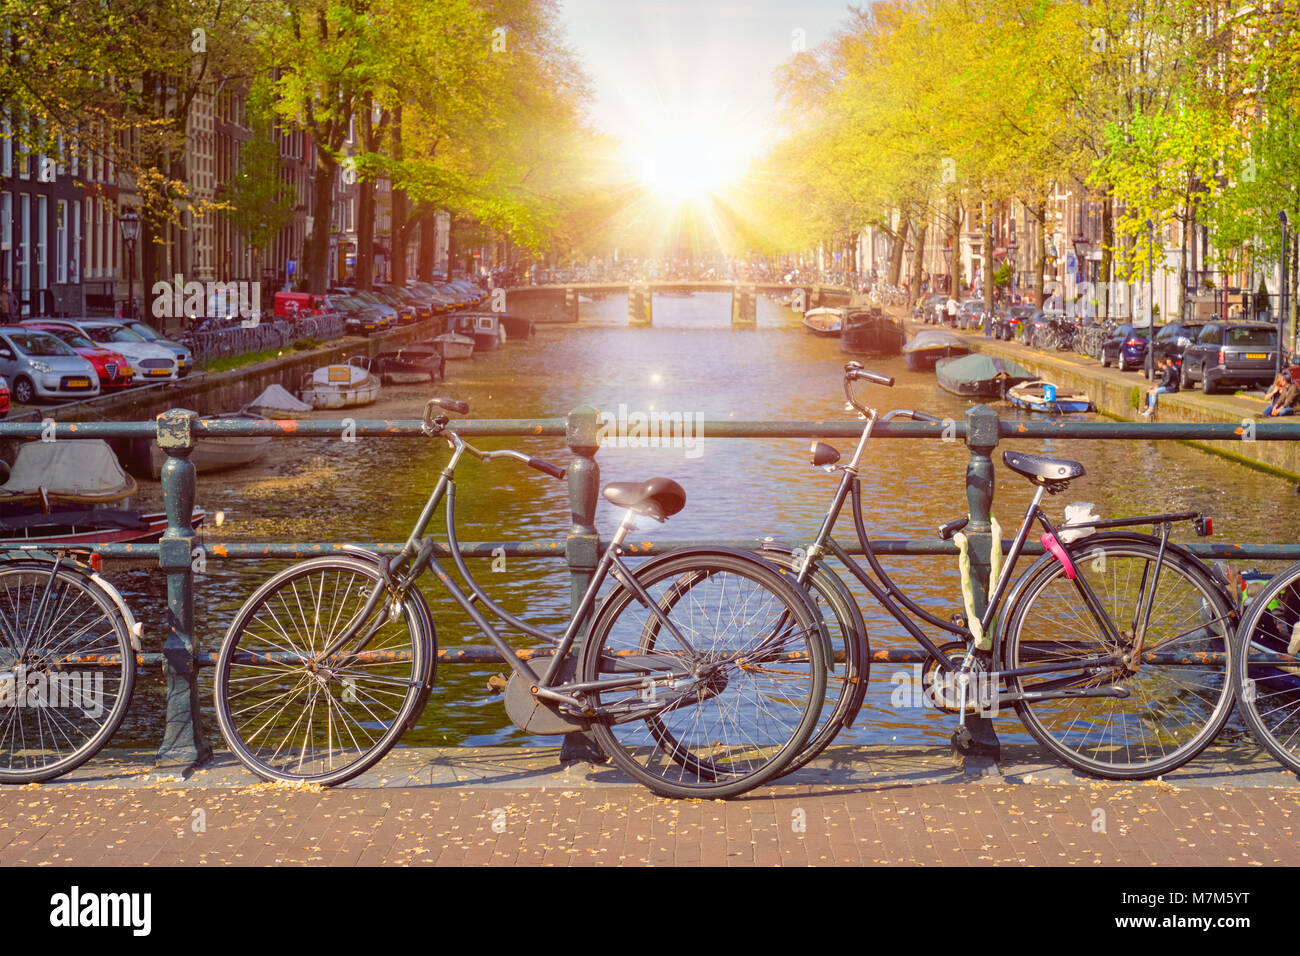 Amterdam canal, bridge and medieval houses - Stock Image